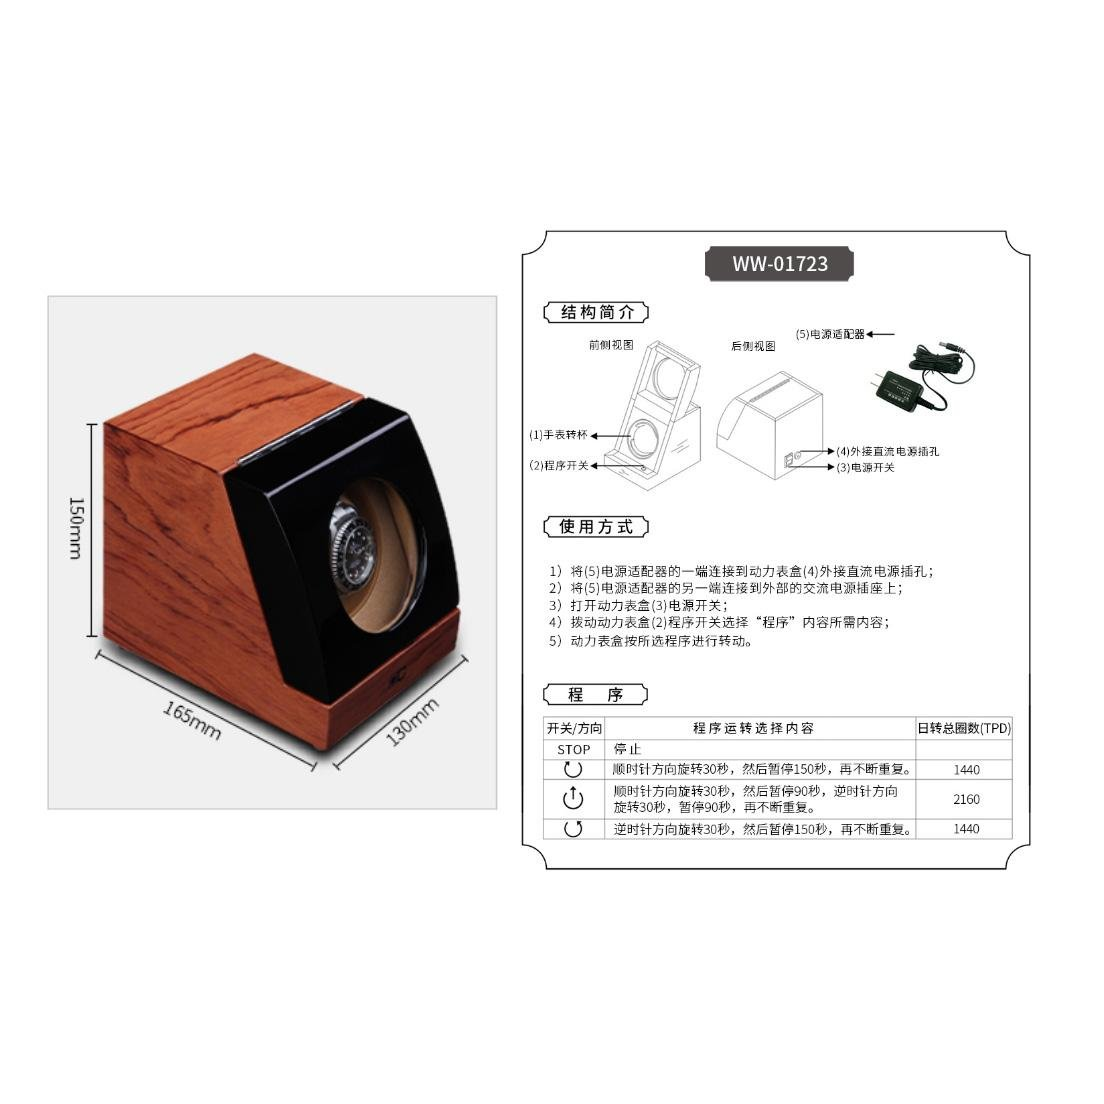 KAIHE-BOX Classic Watch Winders for 1 Watches for automatic Watch Winder Rotator Case Cover Storage H , #1 by KAIHE-BOX (Image #5)